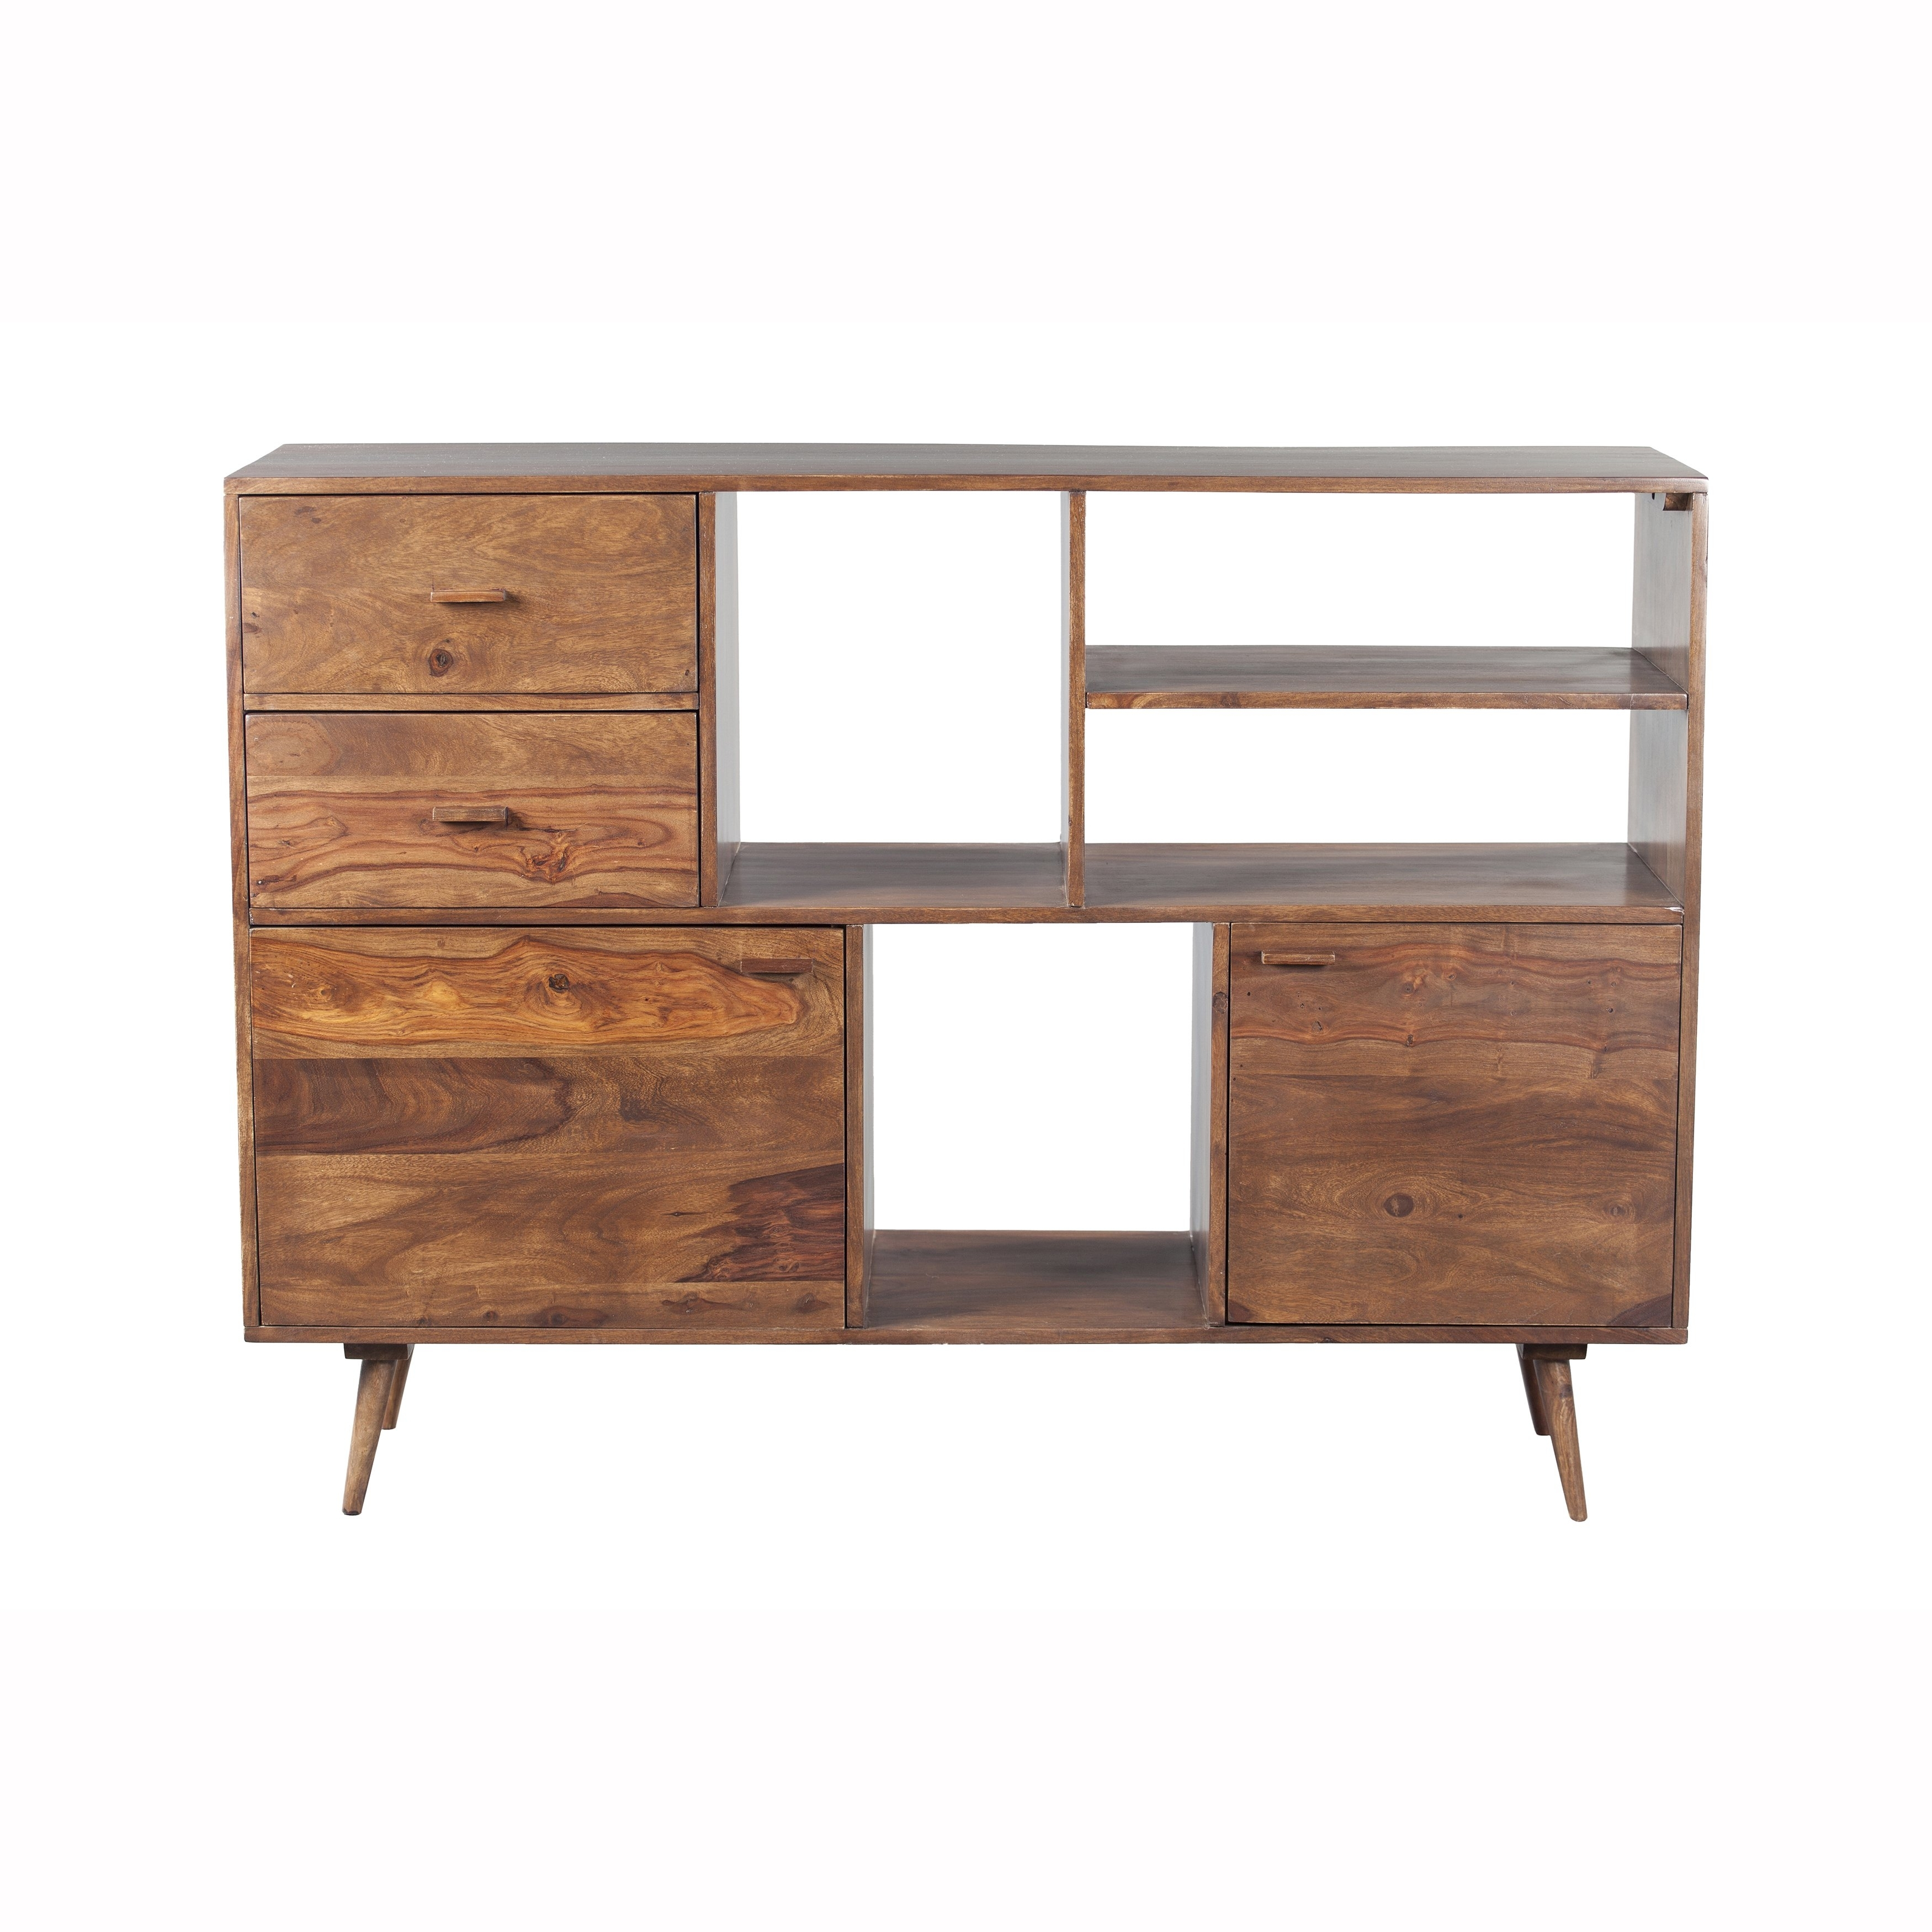 Shop Mandara Handcrafted Solid Sheesham Wood Modern Bookshelf - Free intended for Mandara 3-Drawer 2-Door Sideboards (Image 28 of 30)